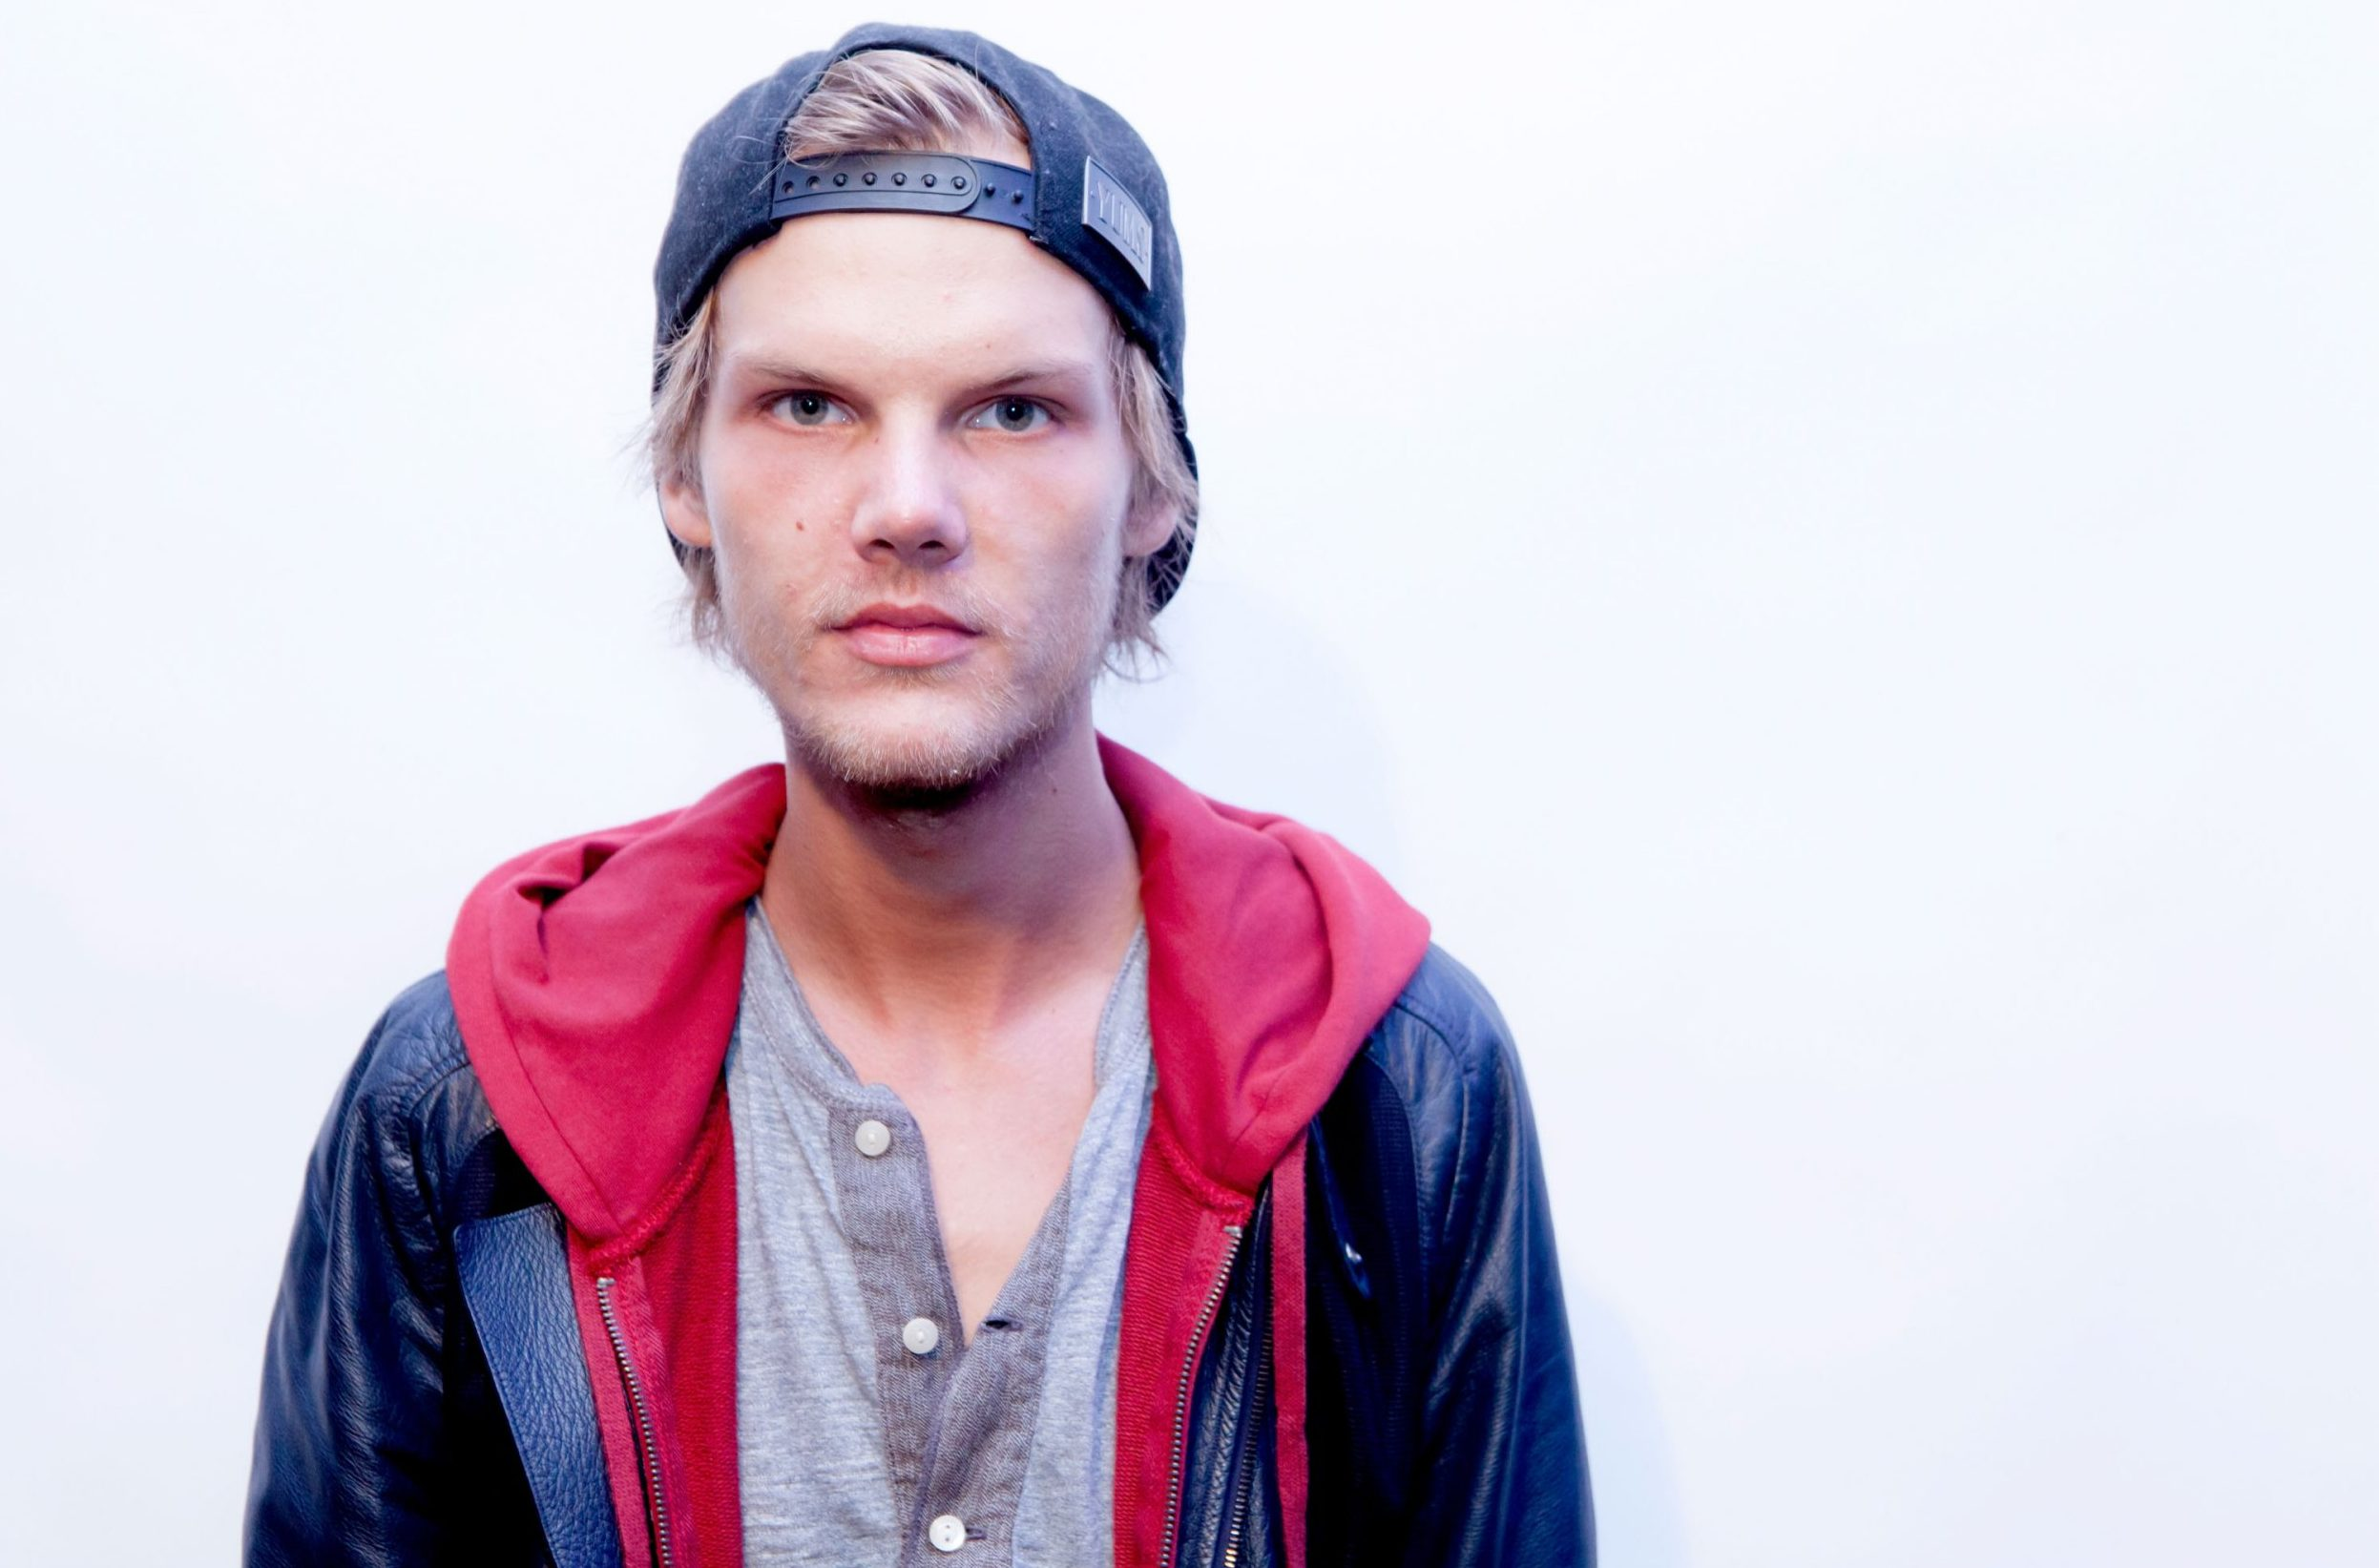 Posthumous Avicii track featuring Chris Martin called Heaven may be released